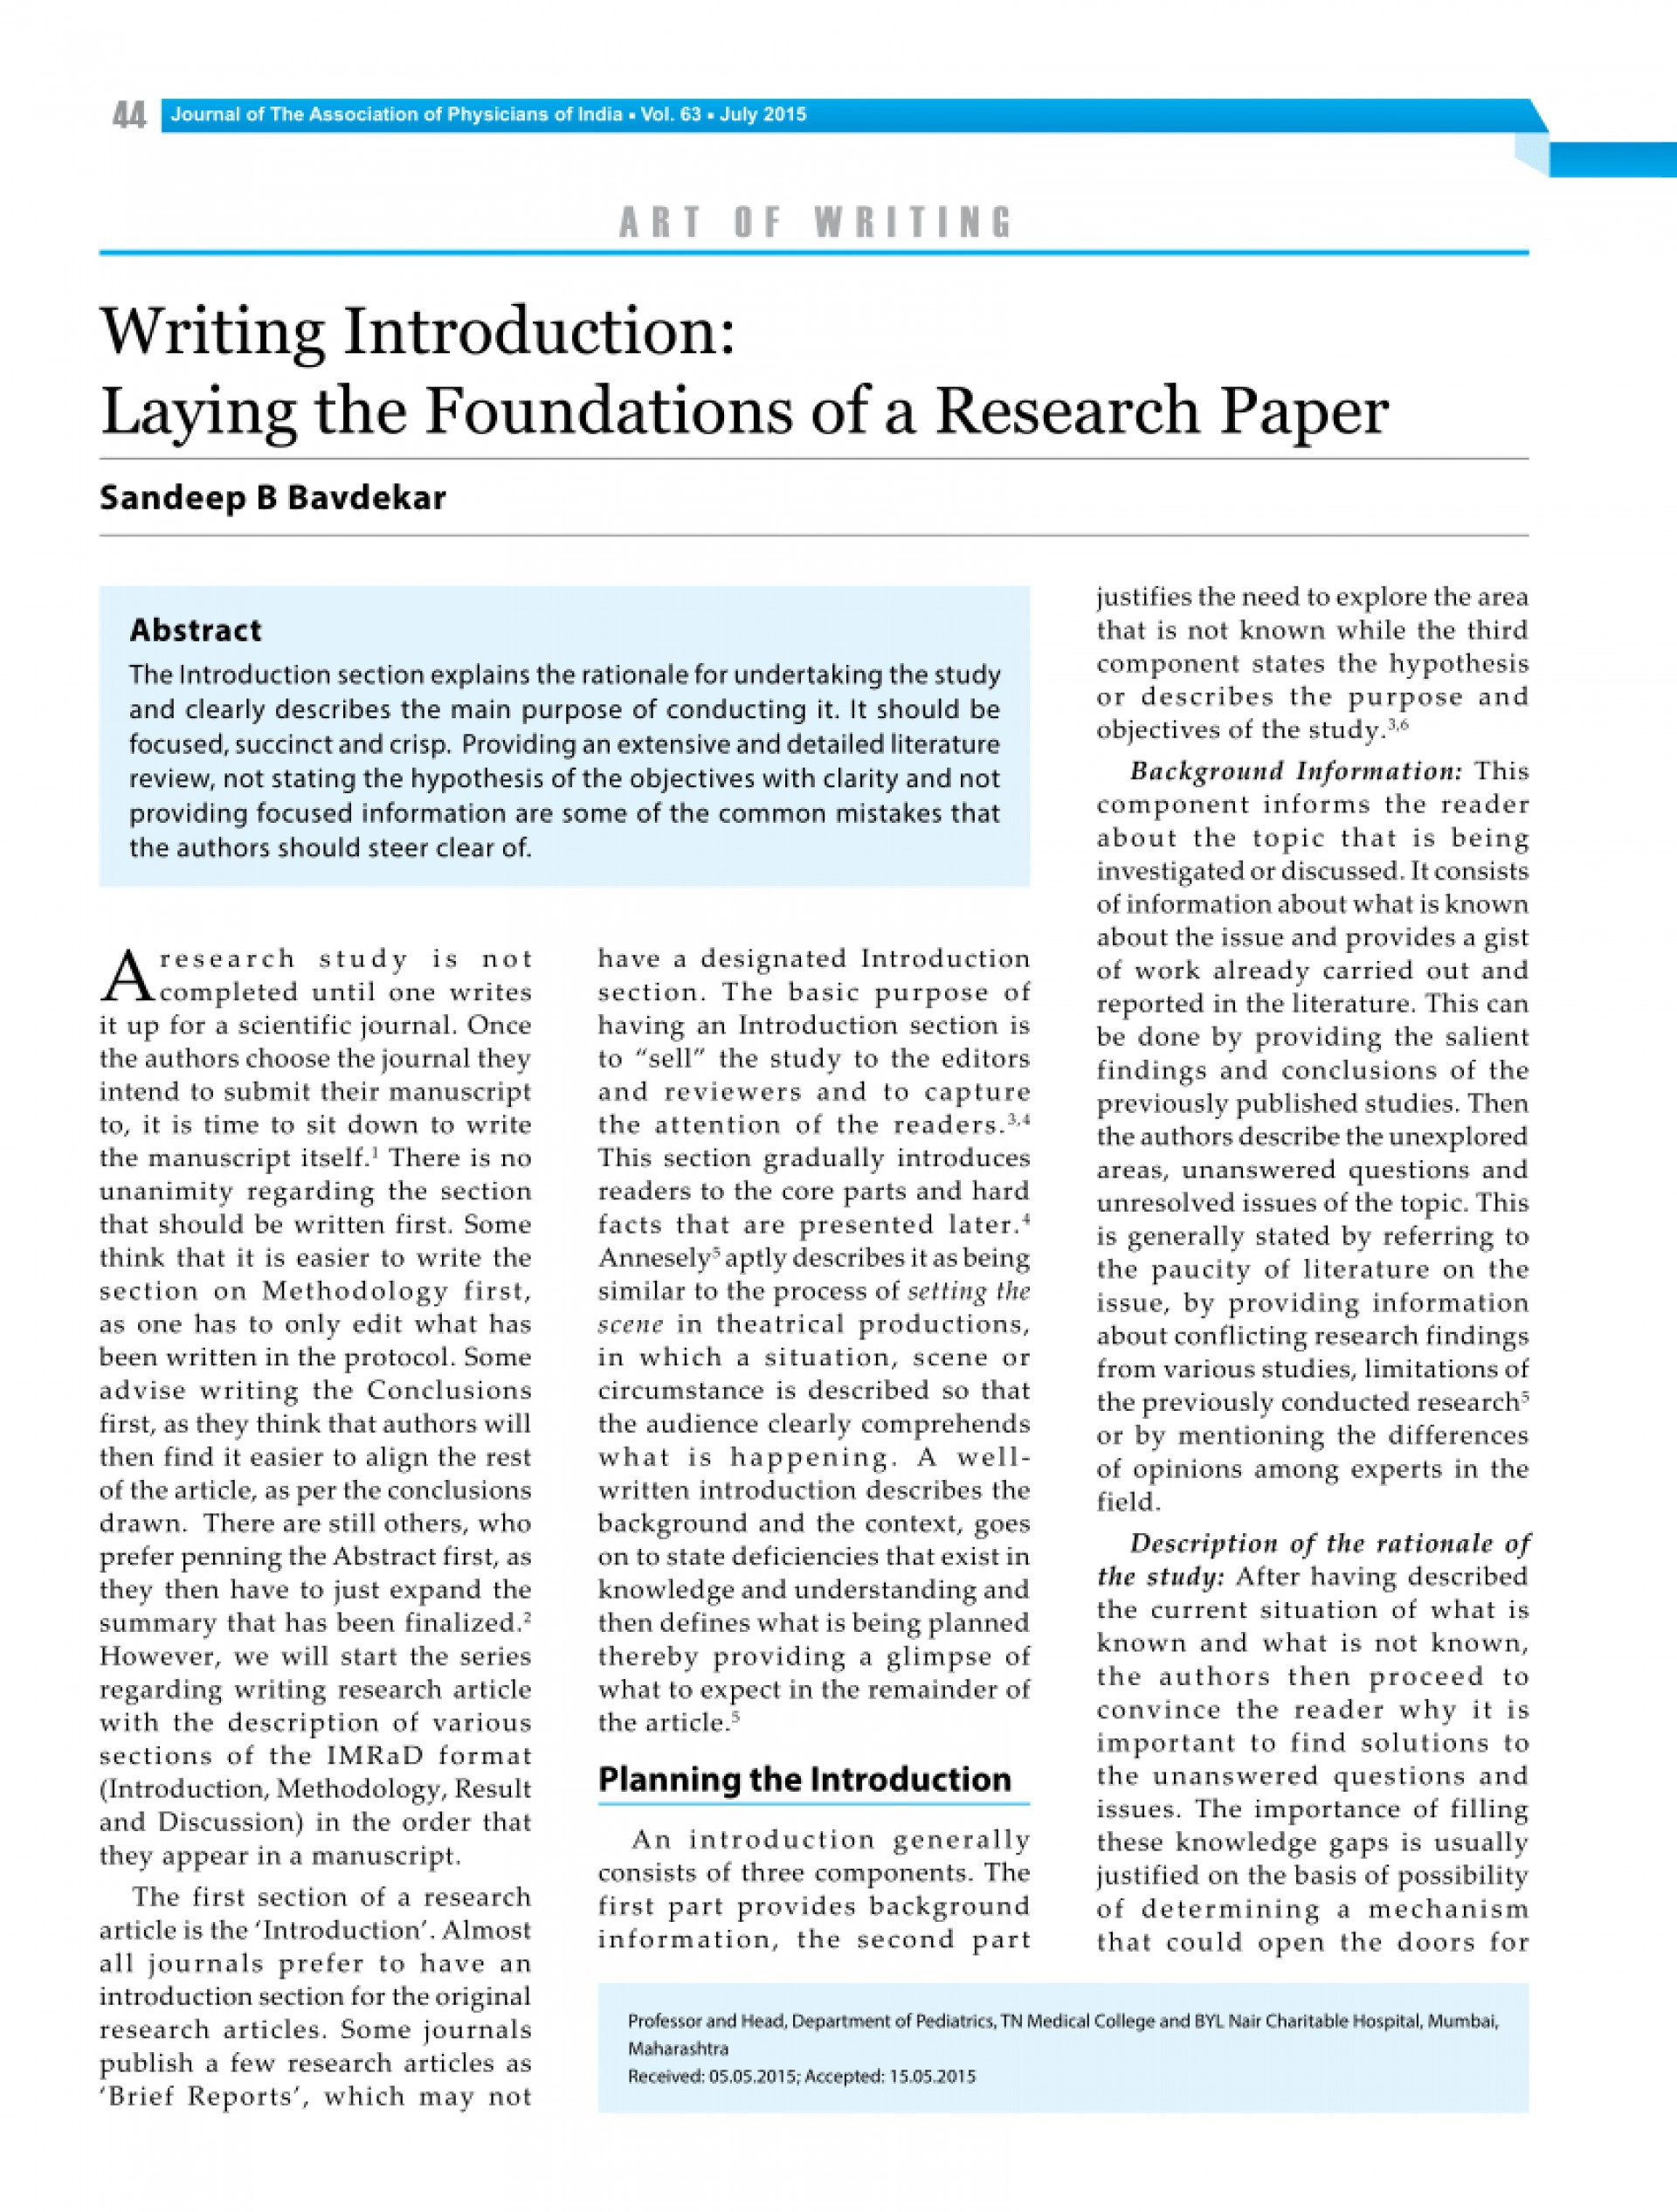 006 Sample Of Research Paper Introduction Stupendous A Example Paragraph How To Write Pdf 1920